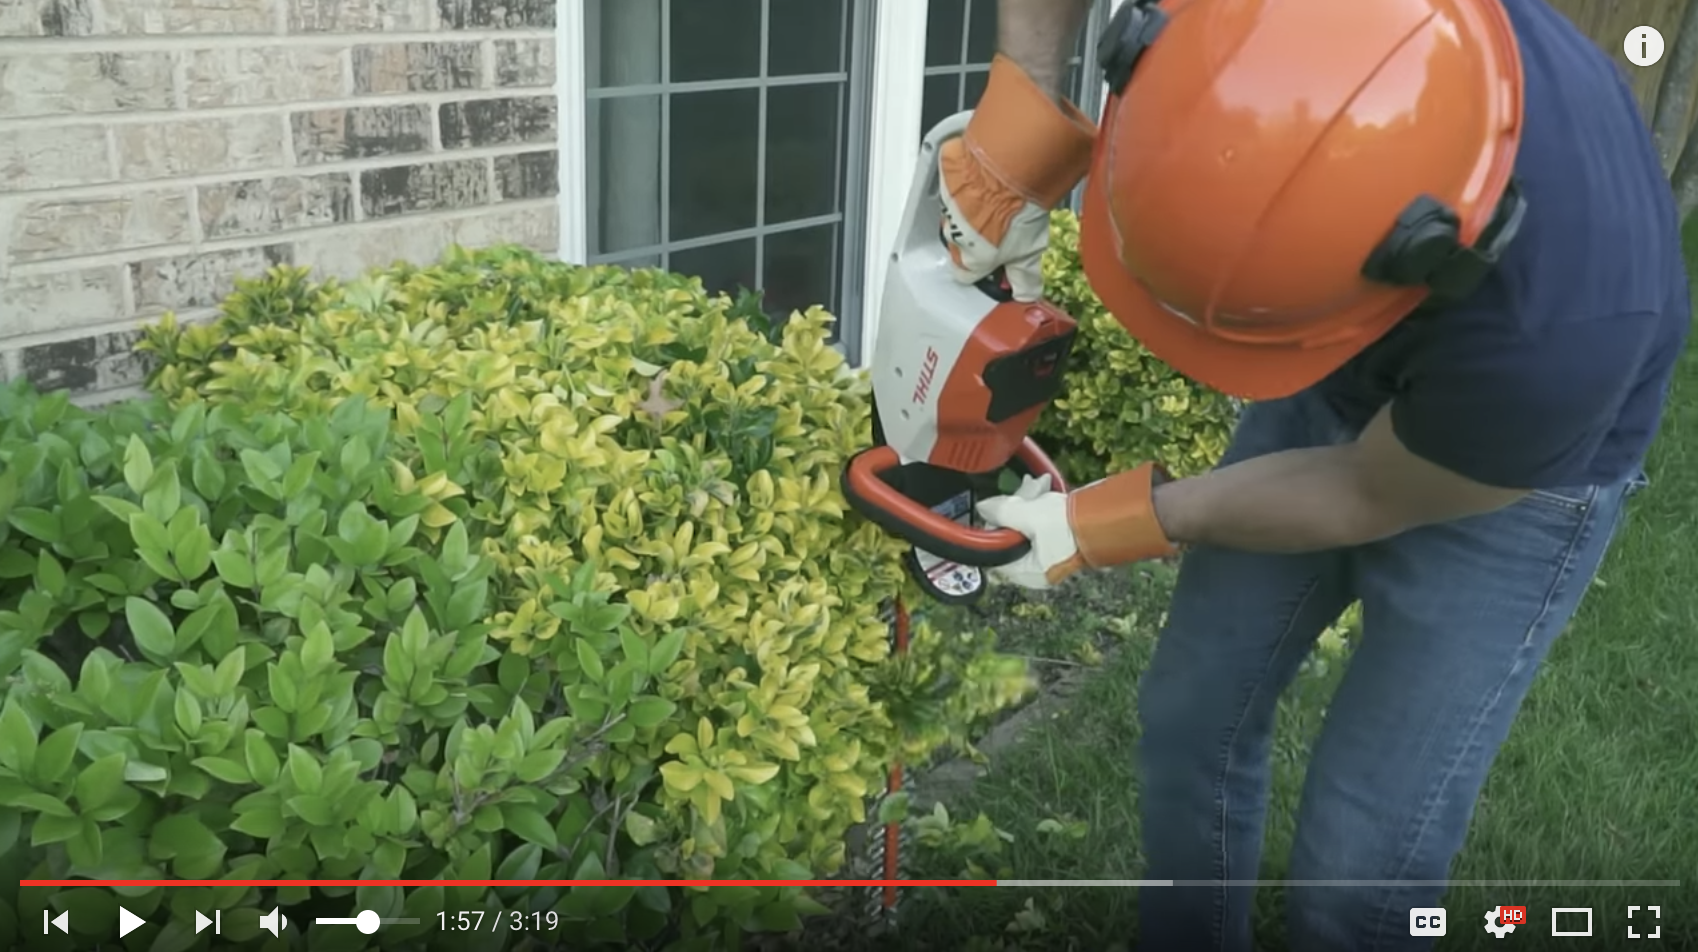 stihl hsa 56 battery powered hedge trimmer review texas home improvement. Black Bedroom Furniture Sets. Home Design Ideas